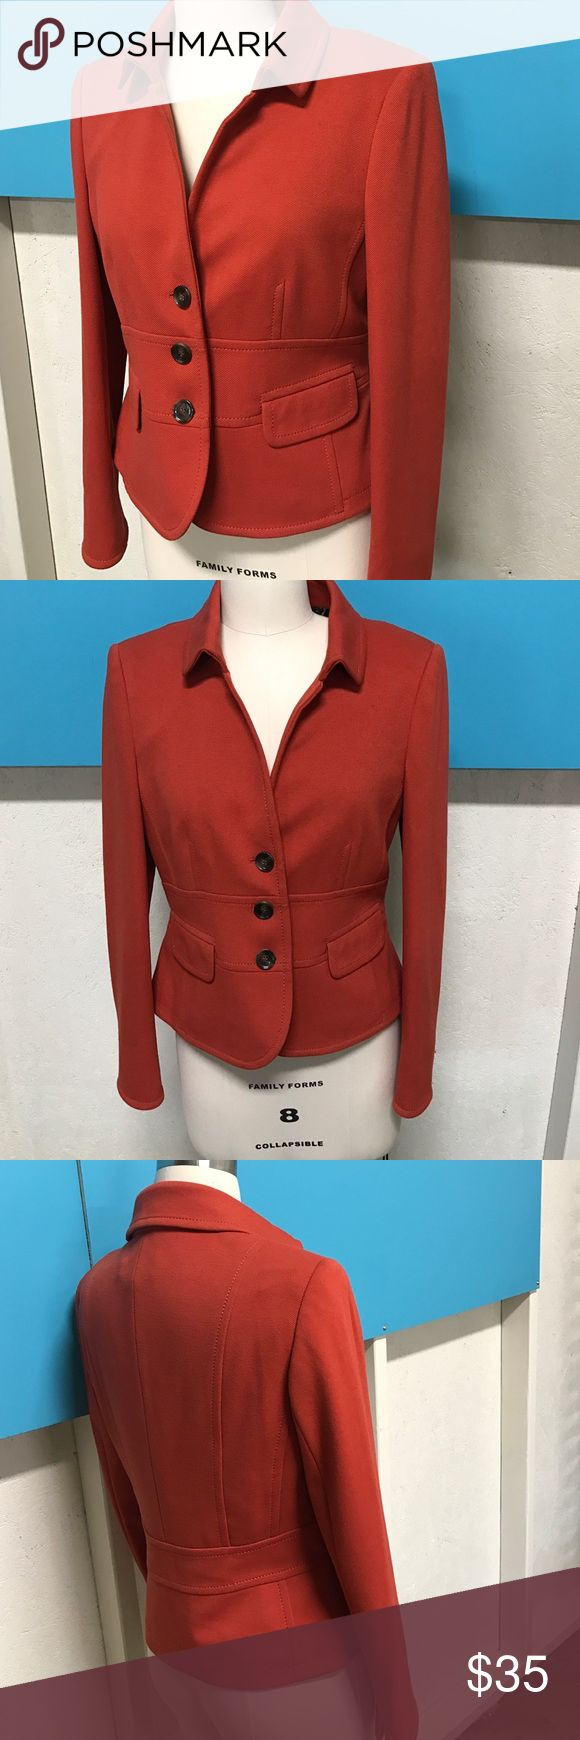 Gerry Weber women's blazer Knit blend women's blazer by Gerry Weber in a beautiful burnt orange color and lined with a brown cheetah print Gerry Weber Jackets & Coats Blazers